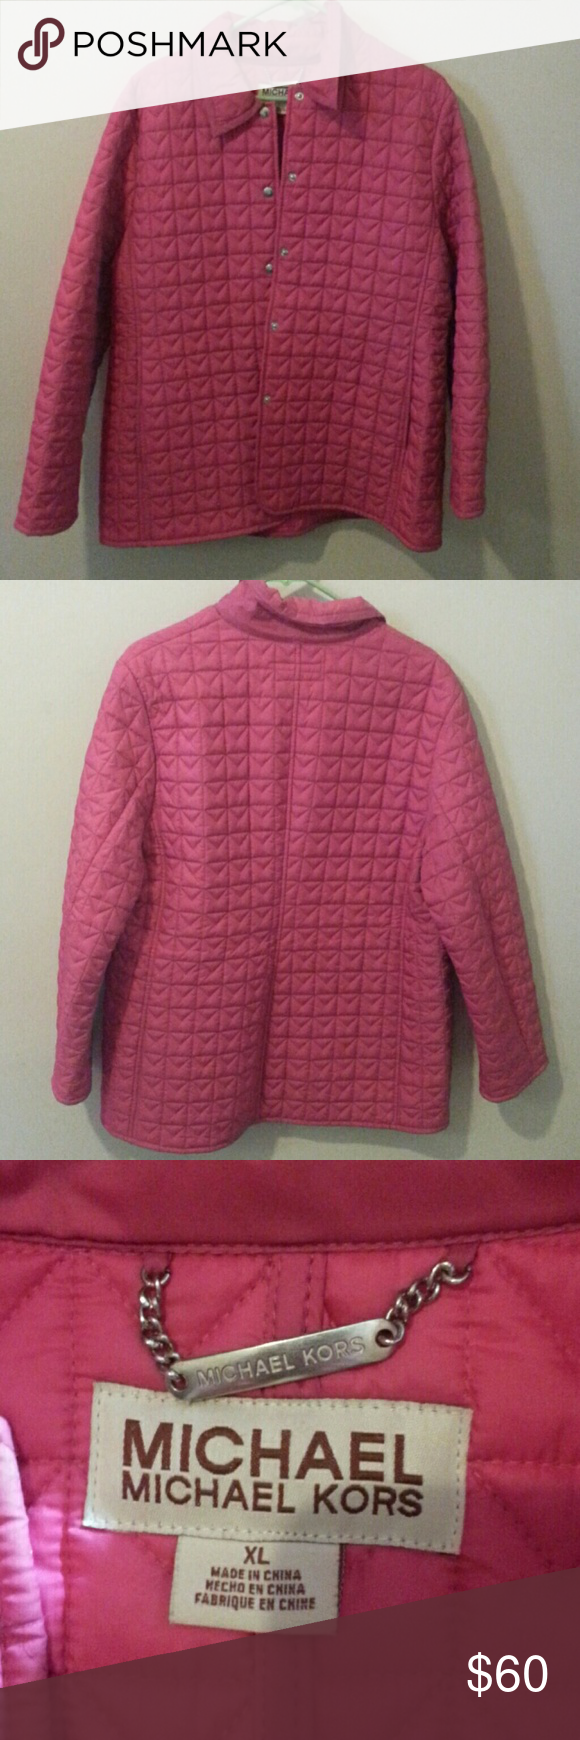 Michael Kors Pink Jacket Lightweight quilted jacket. Great fall or spring jacket. Free of f Pl as and wear. Michael Kors Jackets & Coats